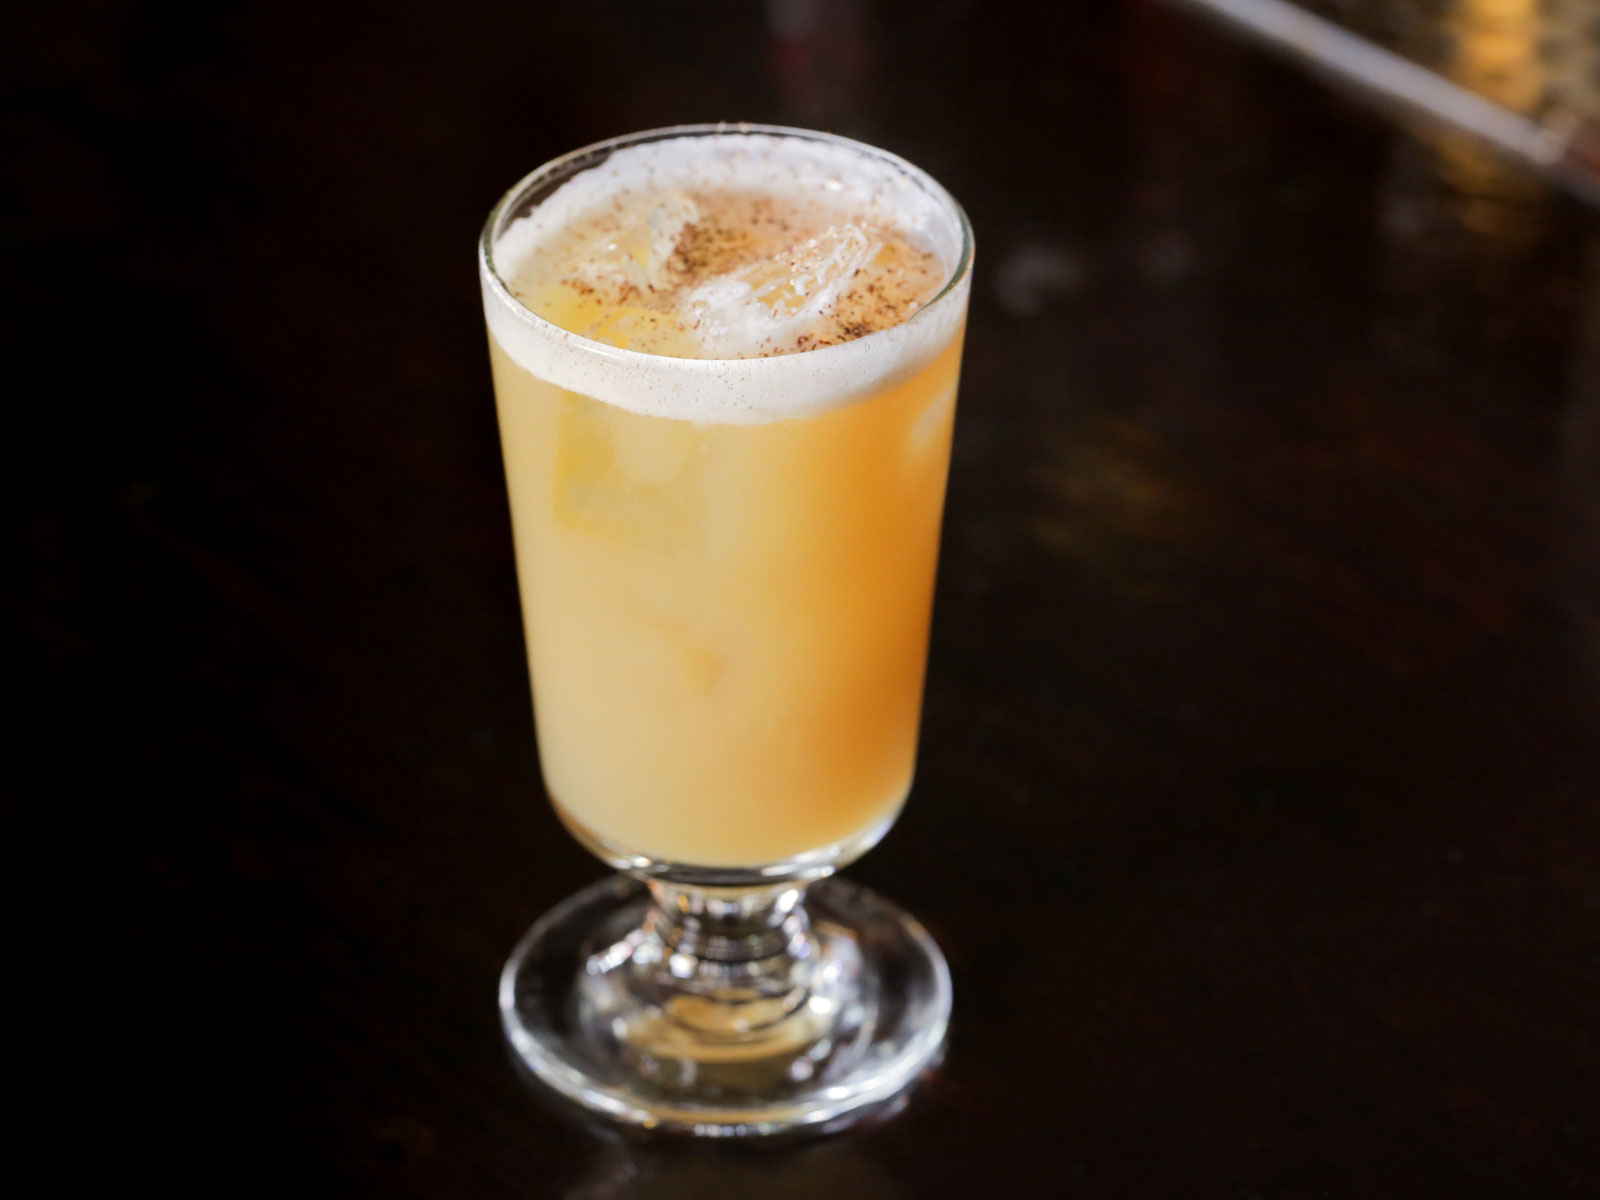 The Perfect Fall Drink Is a... Beer Cocktail?